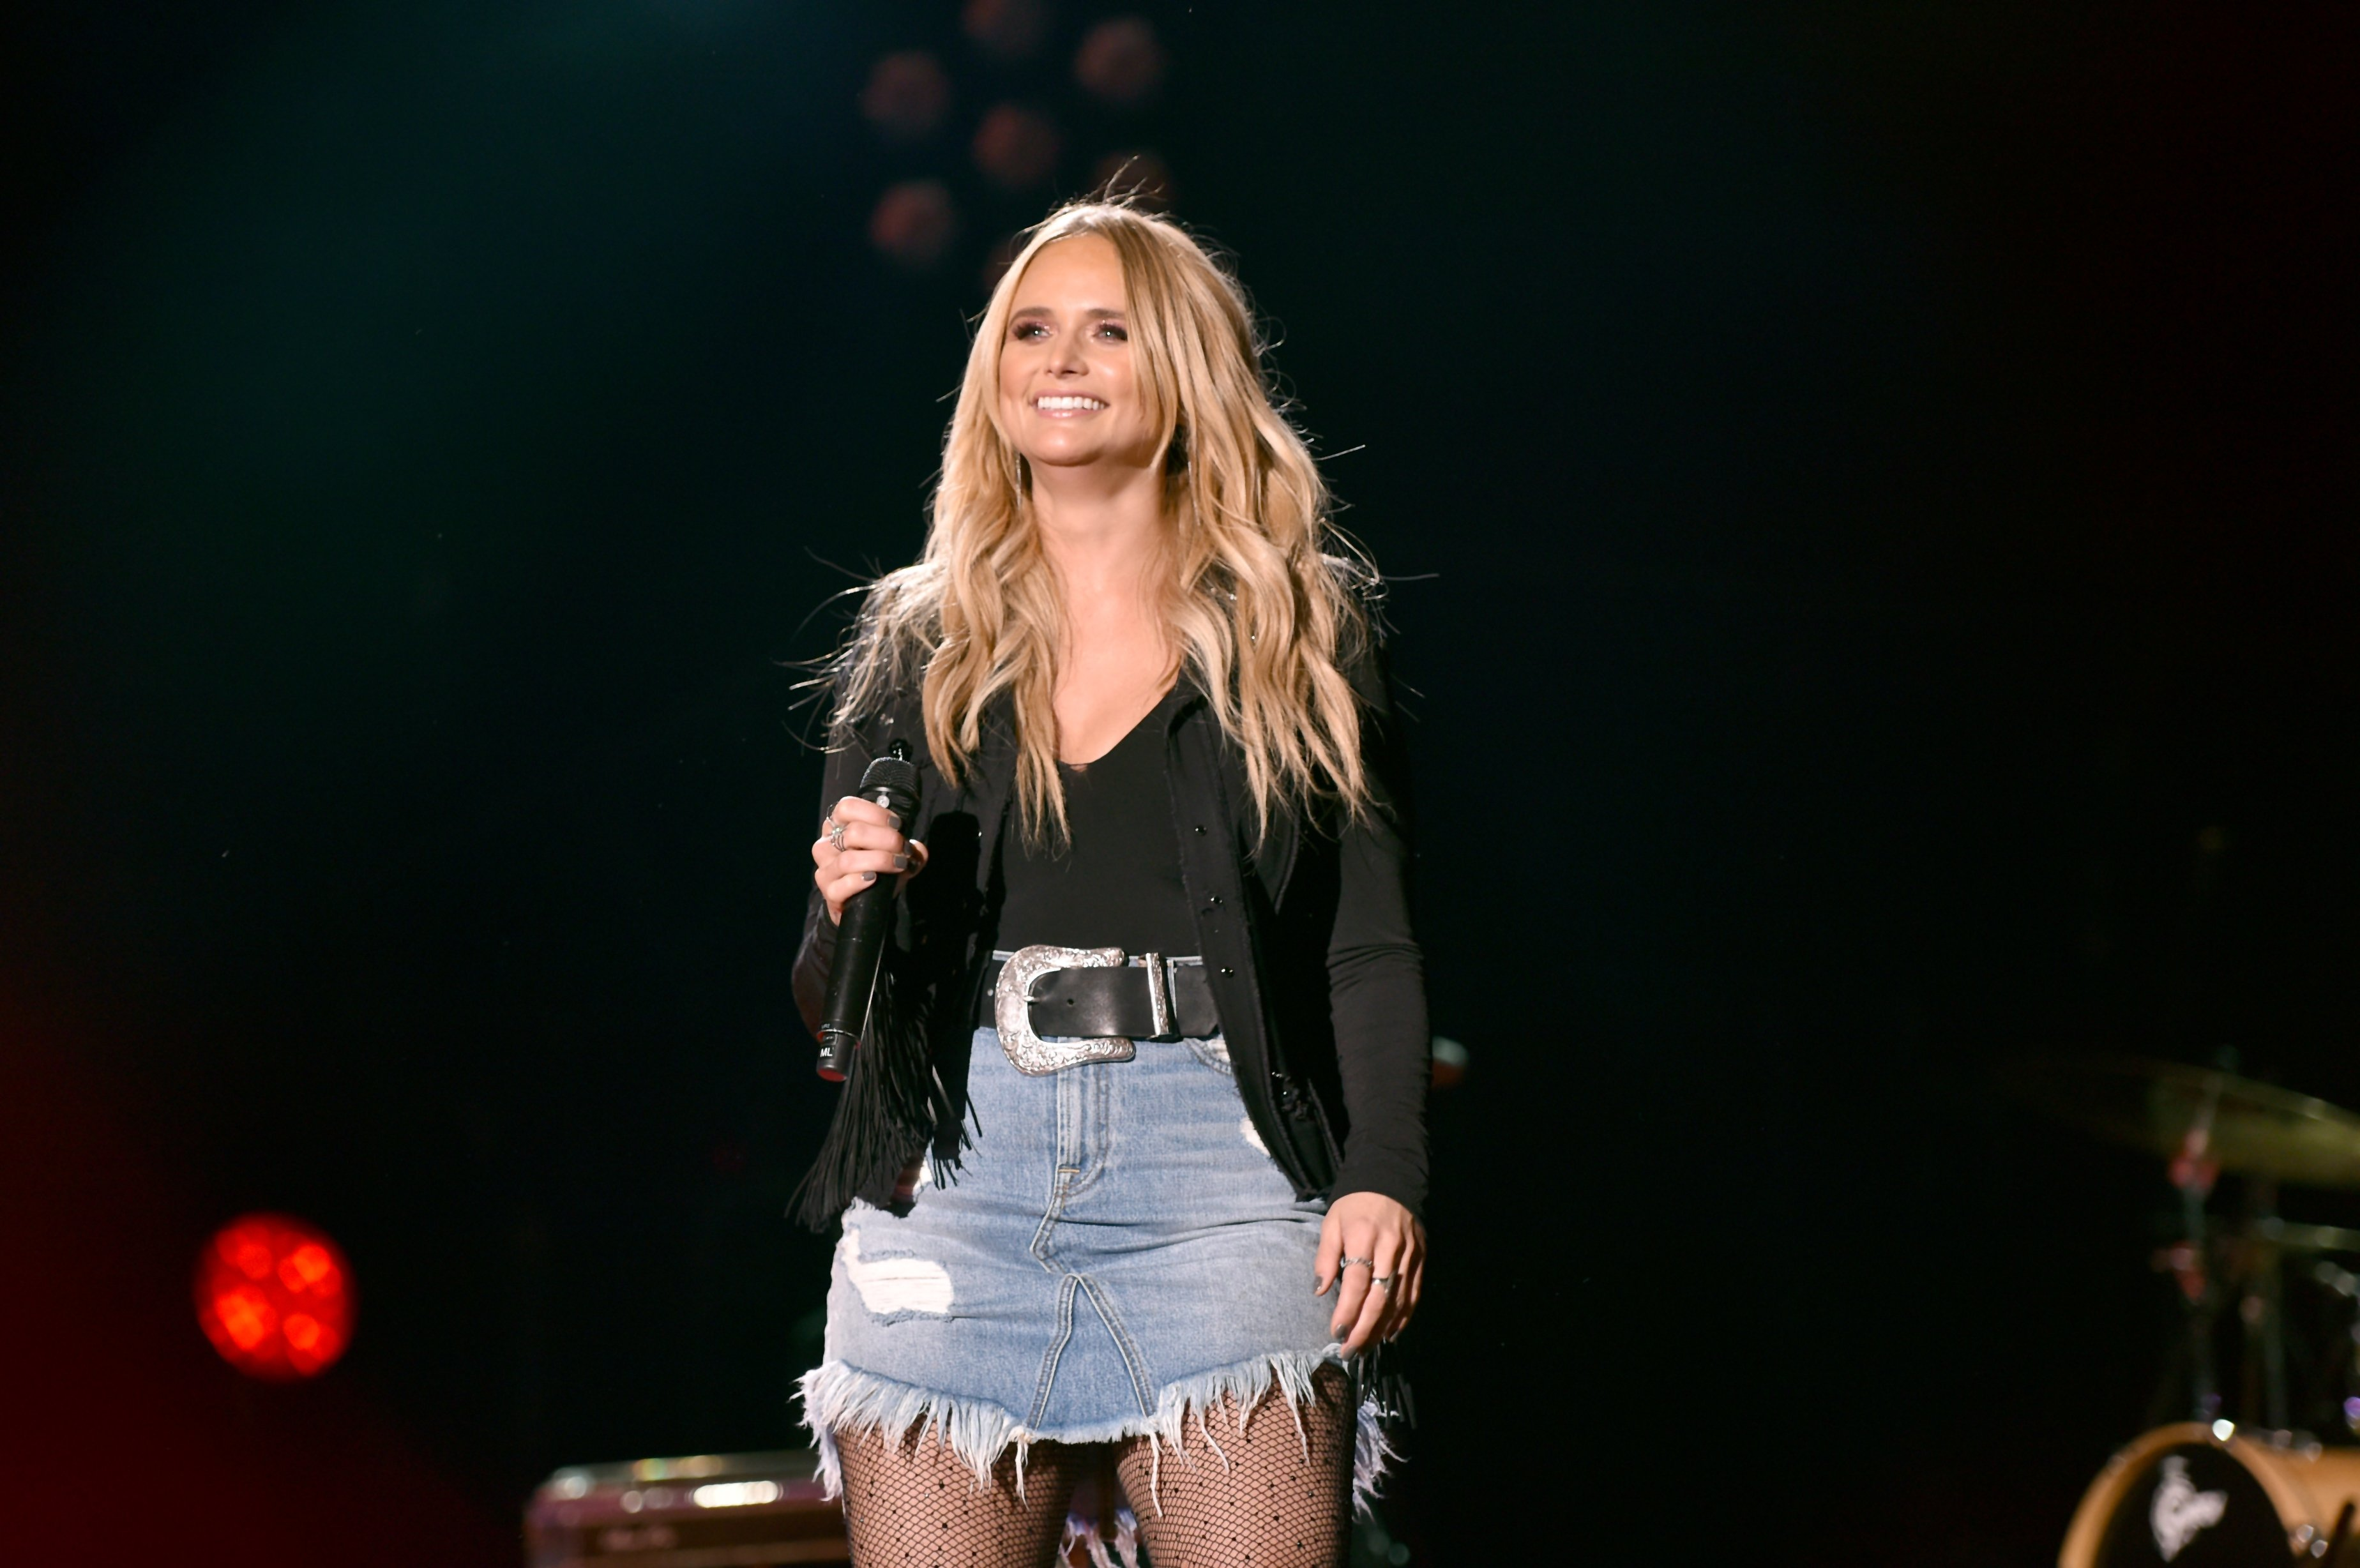 Miranda Lambert performs onstage for day 1 of the 2017 CMA Music Festival on June 8, 2017 in Nashville, Tennessee | Photo: Getty Images